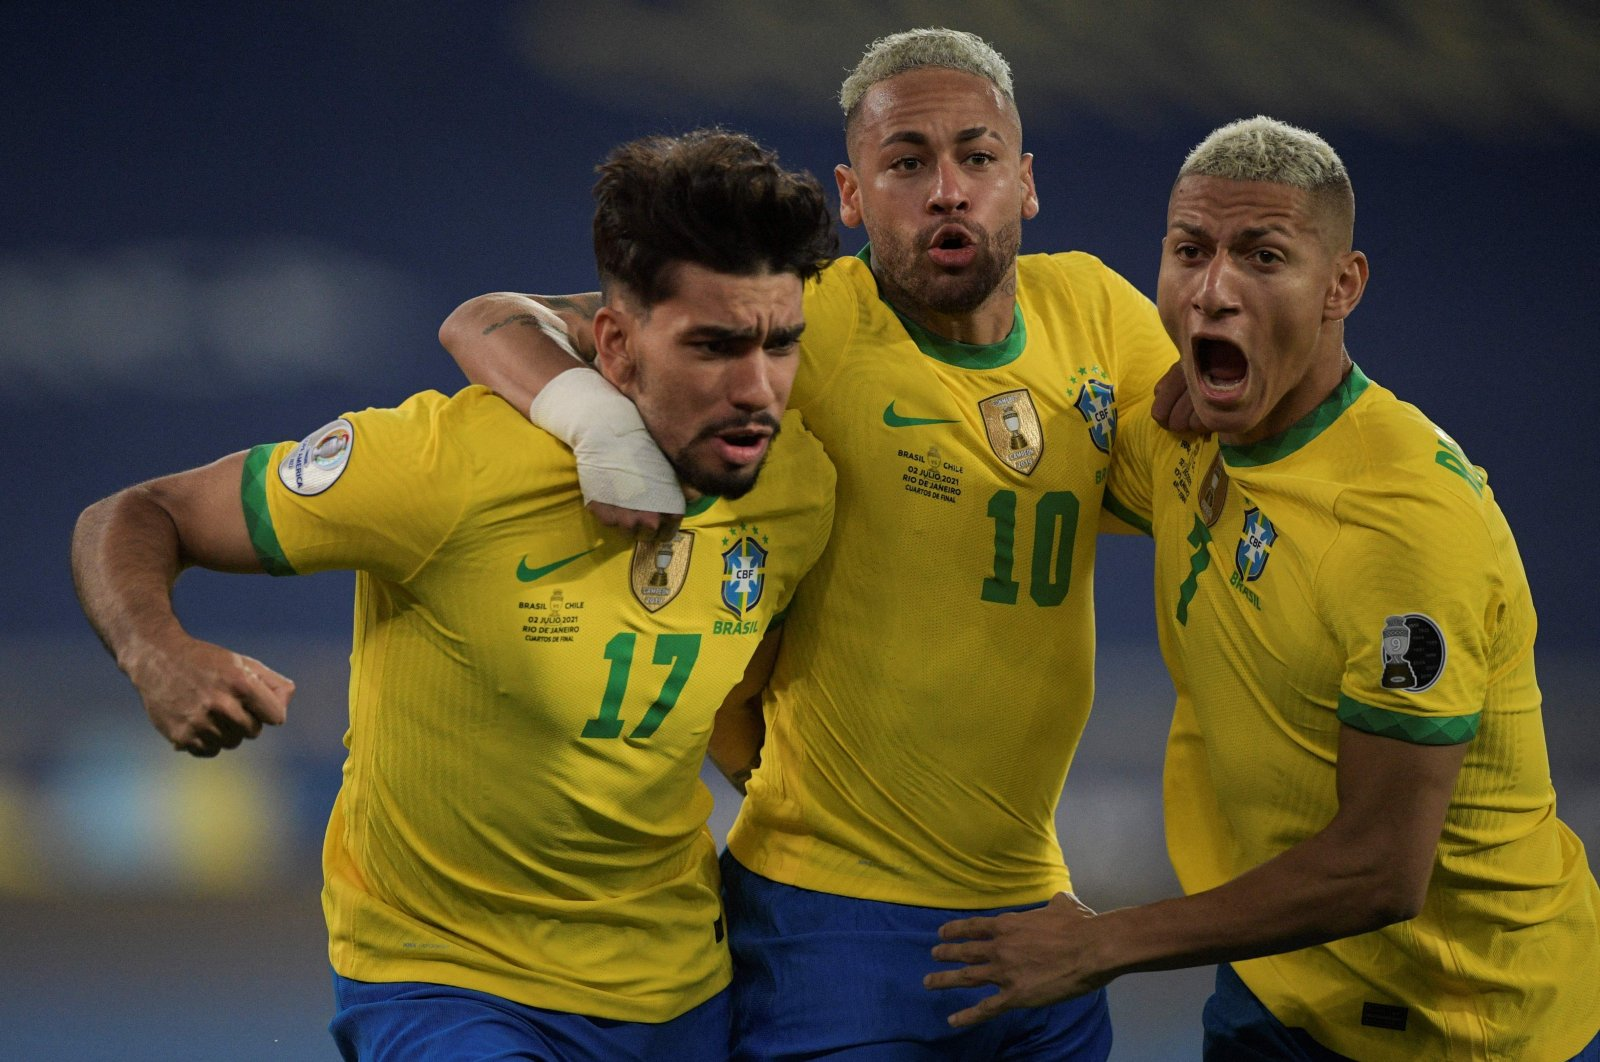 Brazil's Lucas Paqueta (L) celebrates with Neymar (C) and Richarlison after scoring against Chile during their 2021 Copa America quarterfinal at the Nilton Santos Stadium in Rio de Janeiro, Brazil, July 2, 2021. (AFP Photo)